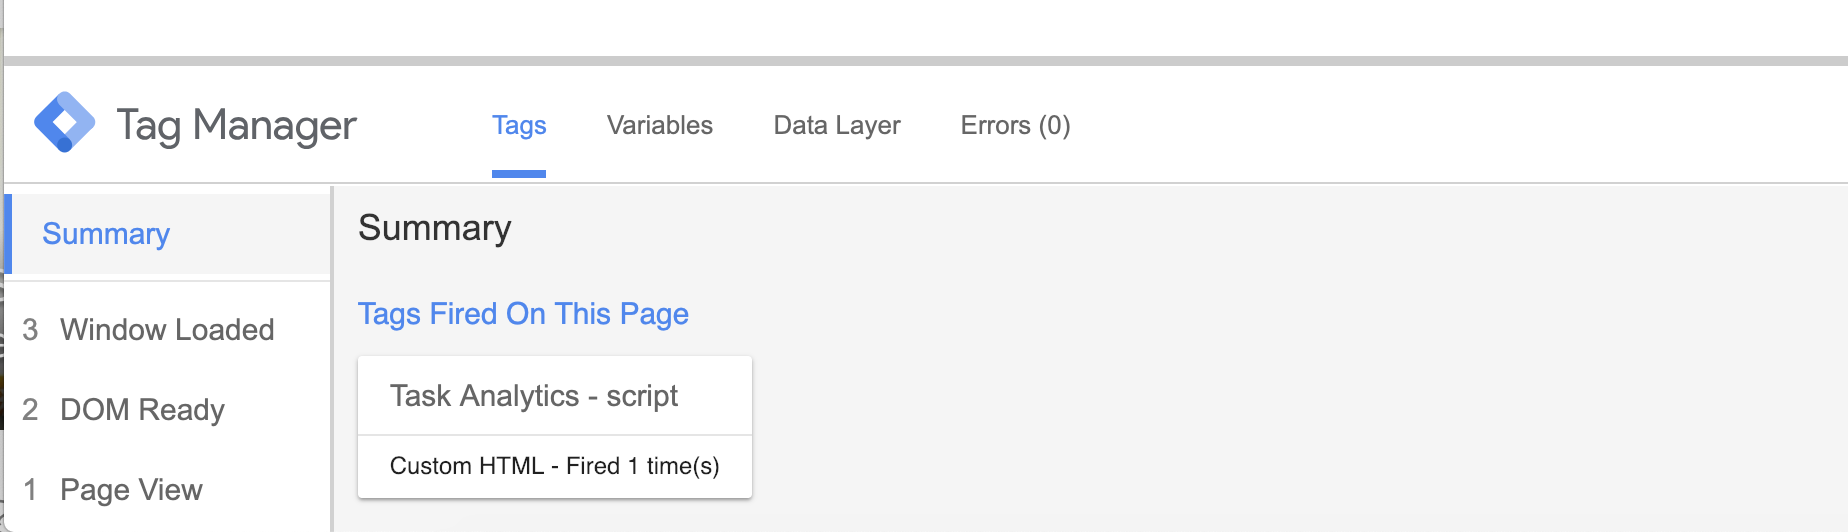 Preview modus of Google Tag Manager to check firing of Task Analytics